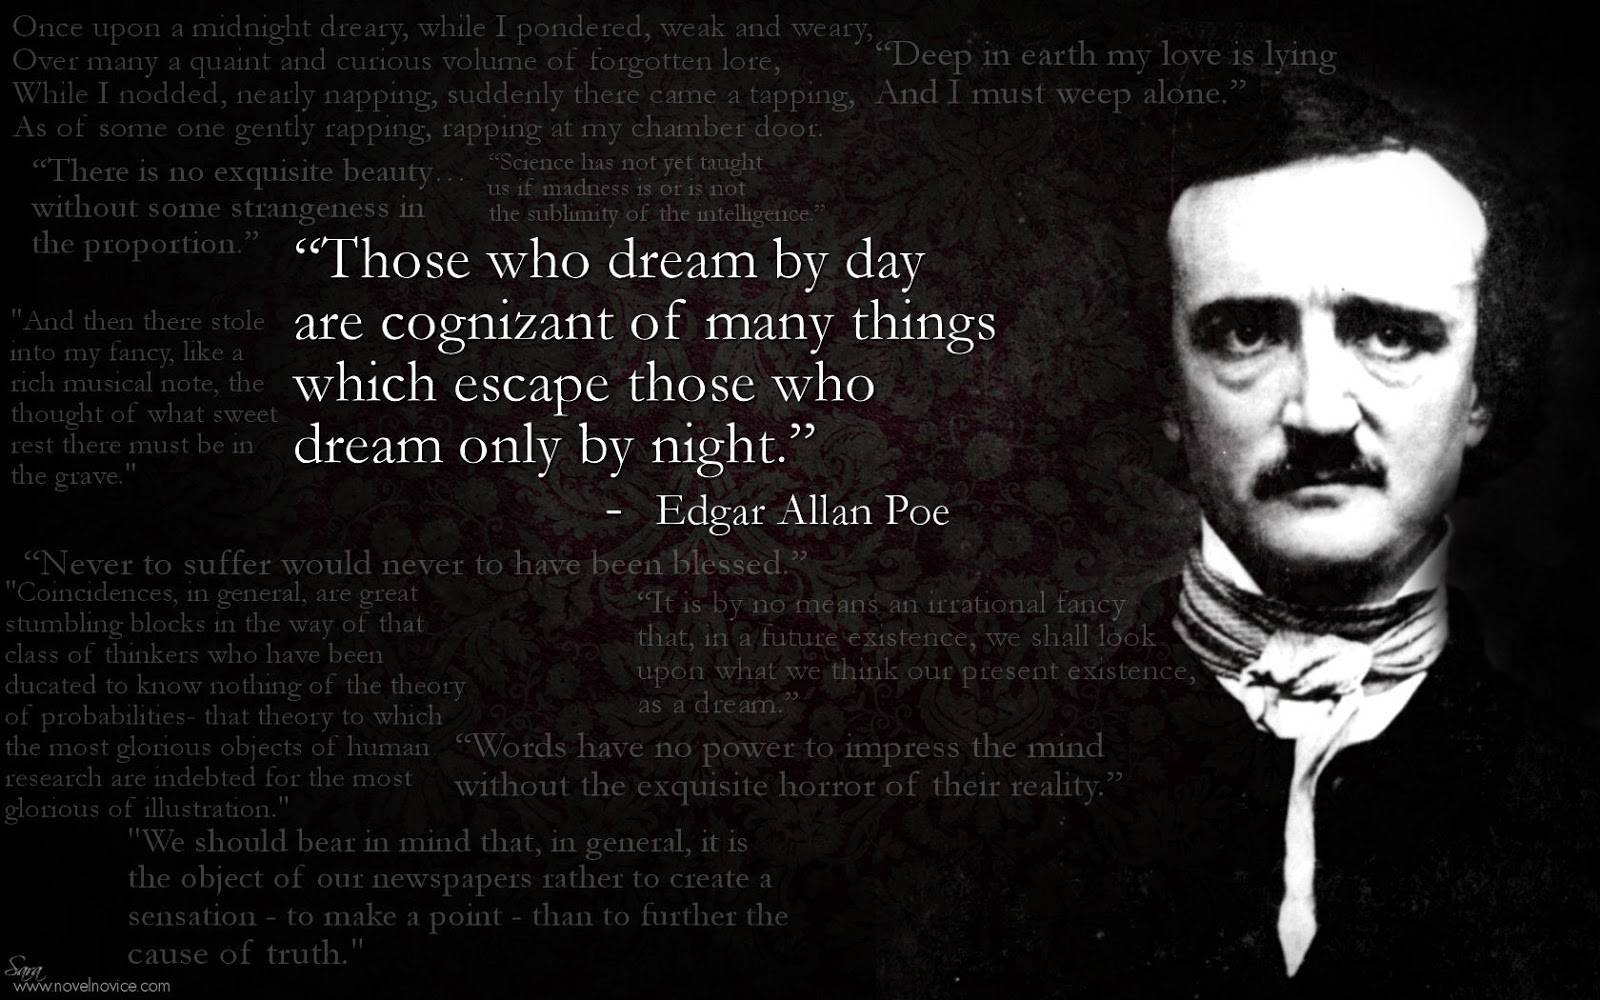 edgar allan poe quotes 11